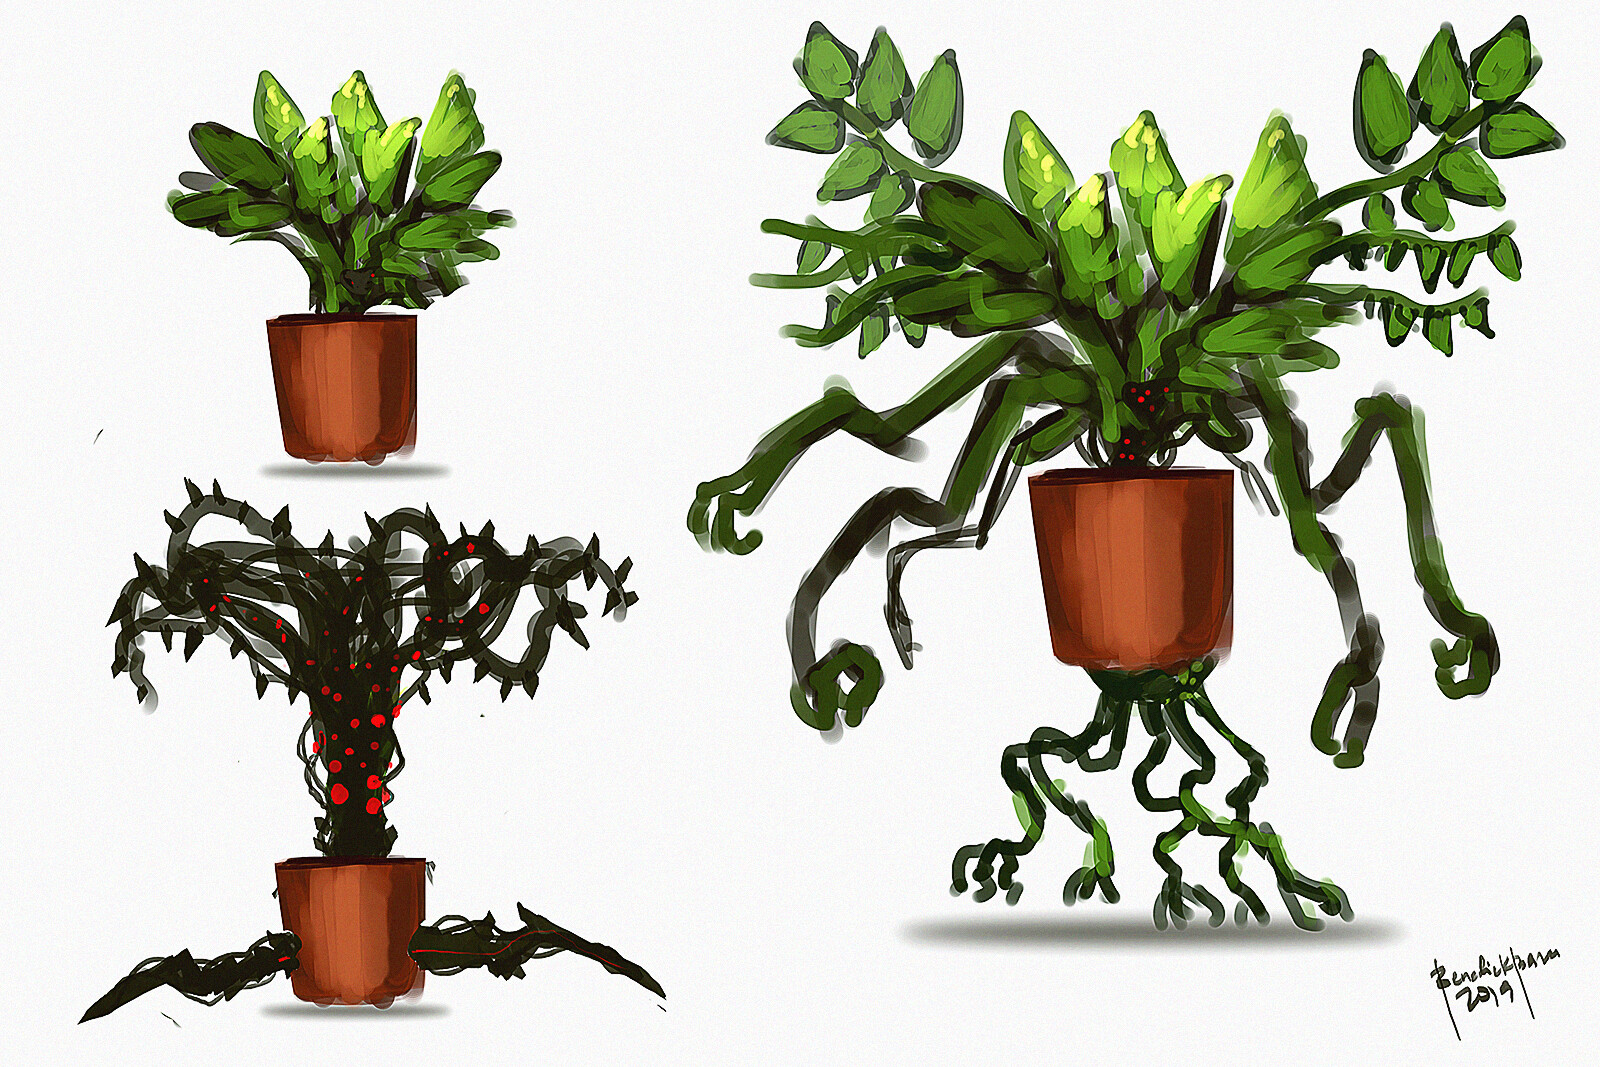 not my style :D well trying something different haha! - ancient creature disguise as a plant :D. it mimics plants and hide in vases.